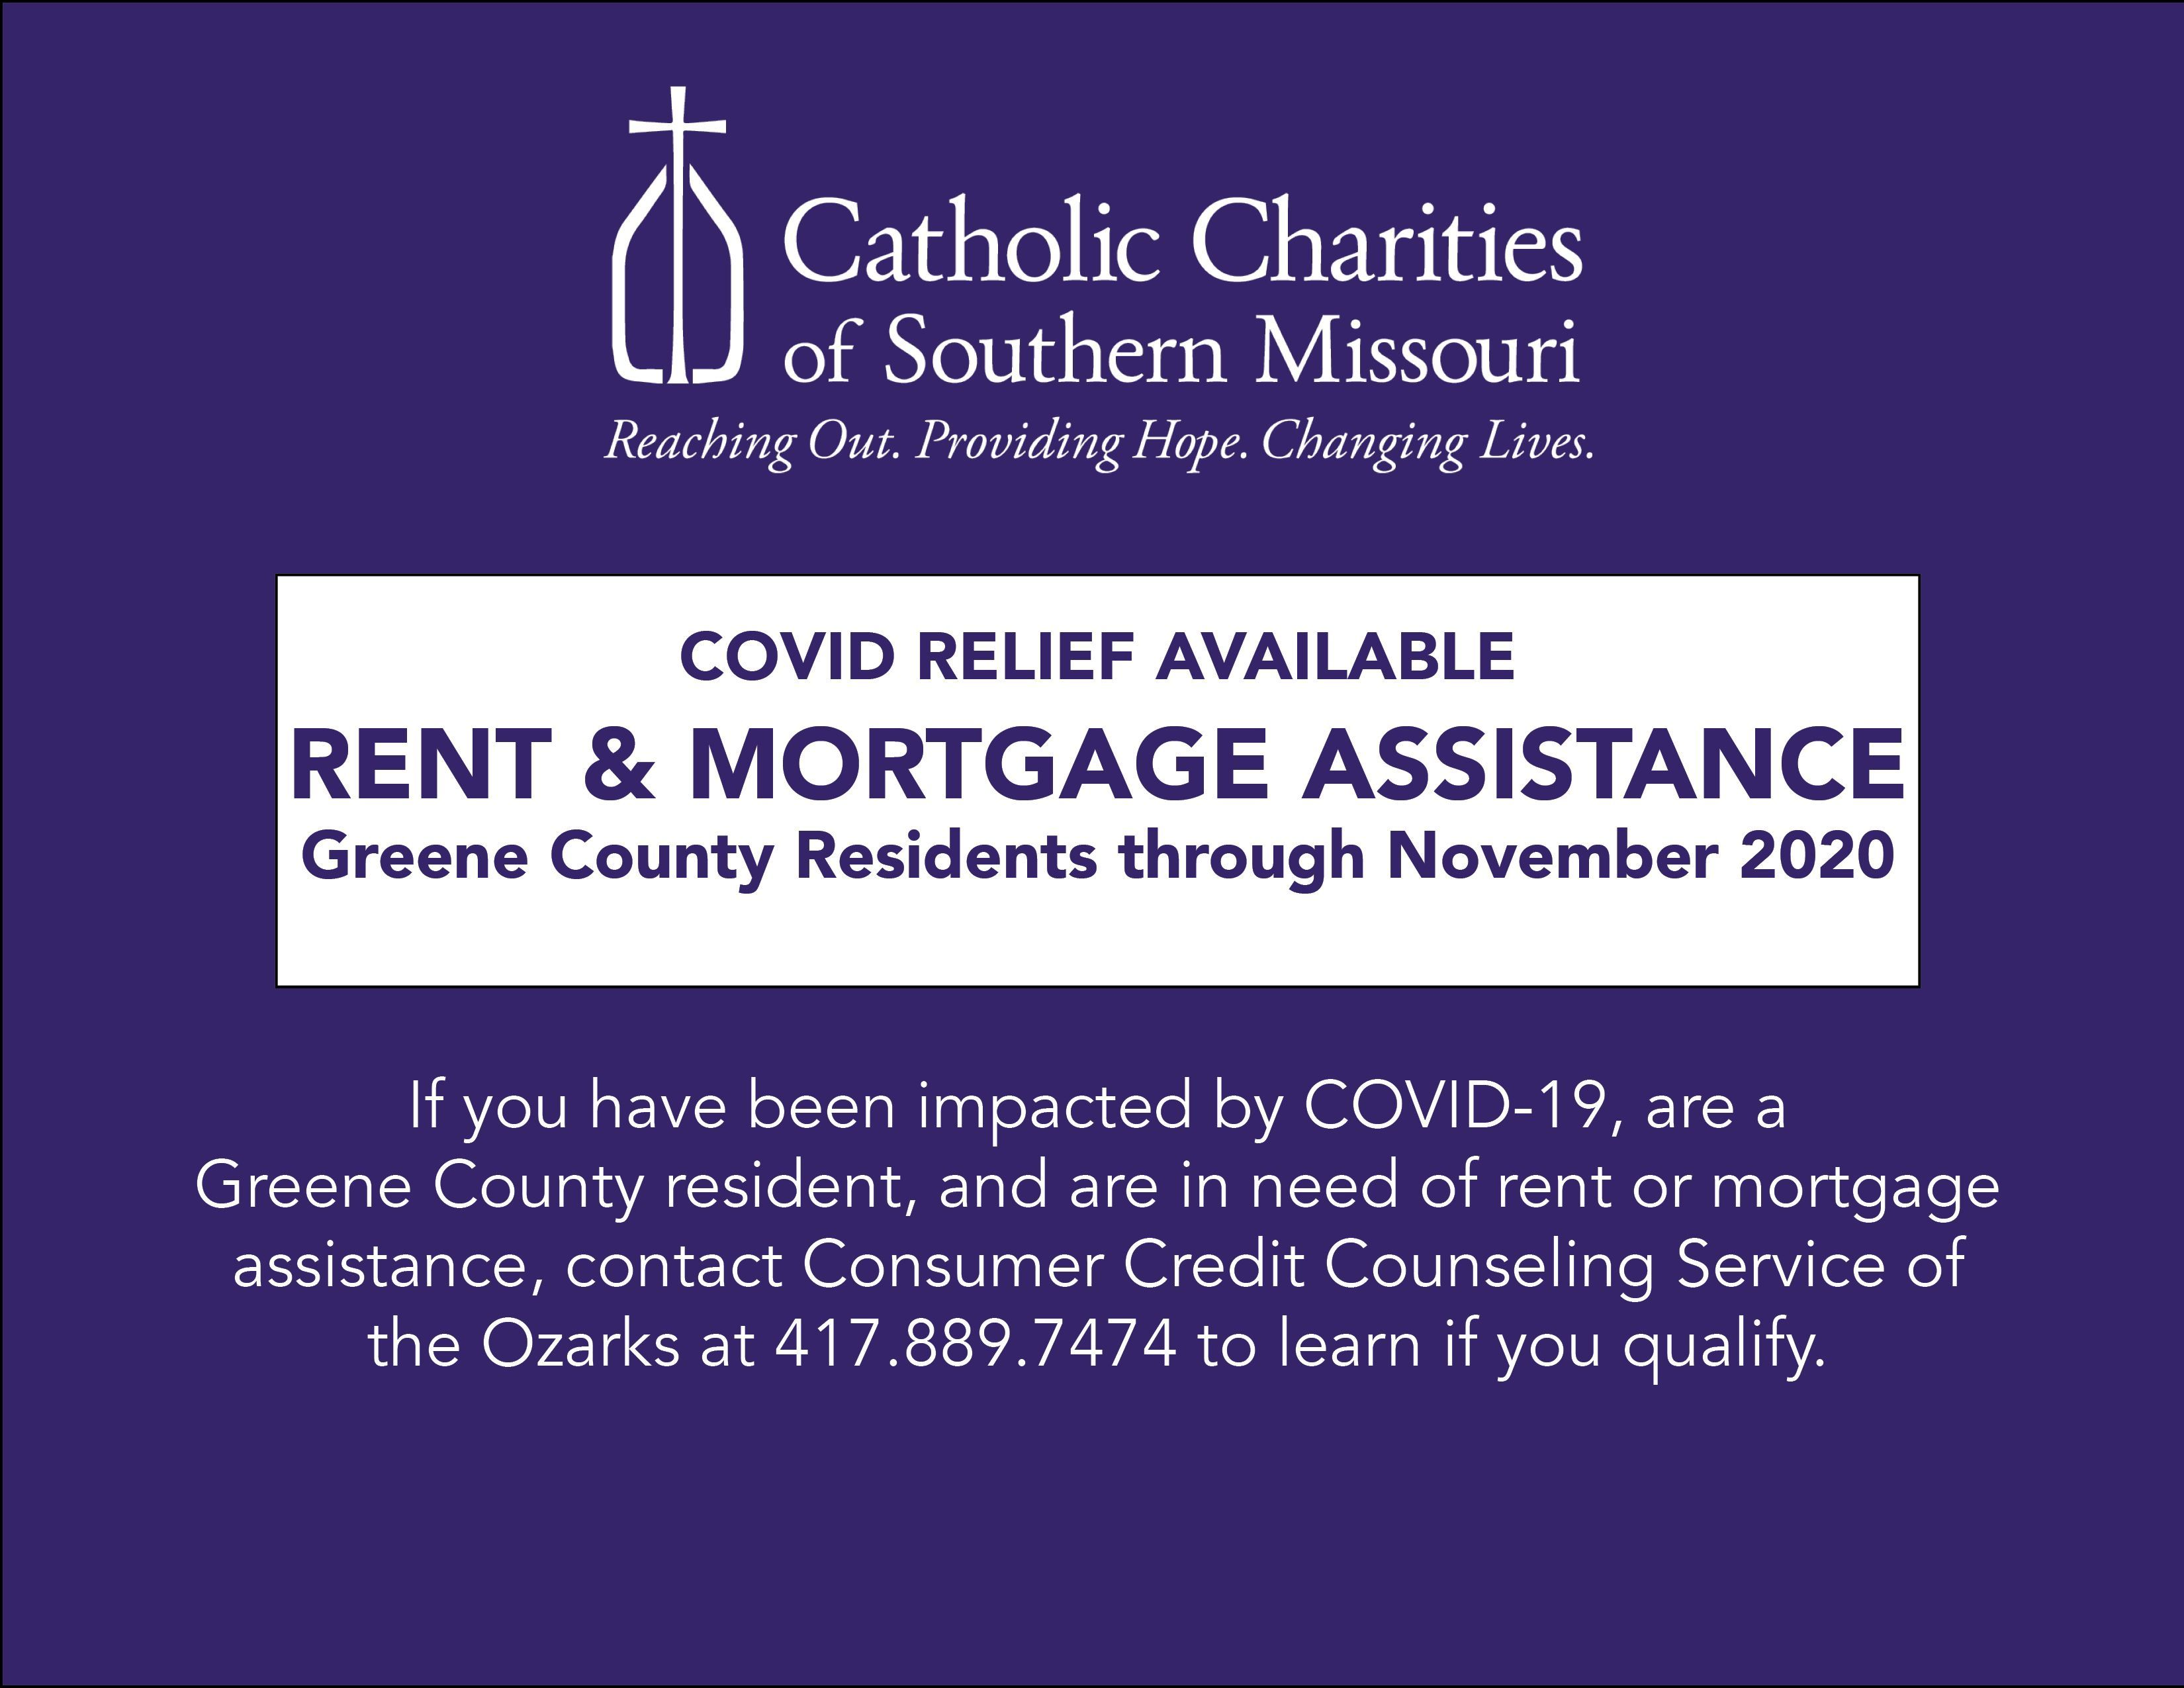 CARES Act COVID Relief Rent & Mortgage Assistance Available From Consumer Credit Counseling Service of the Ozarks for Greene County Residents